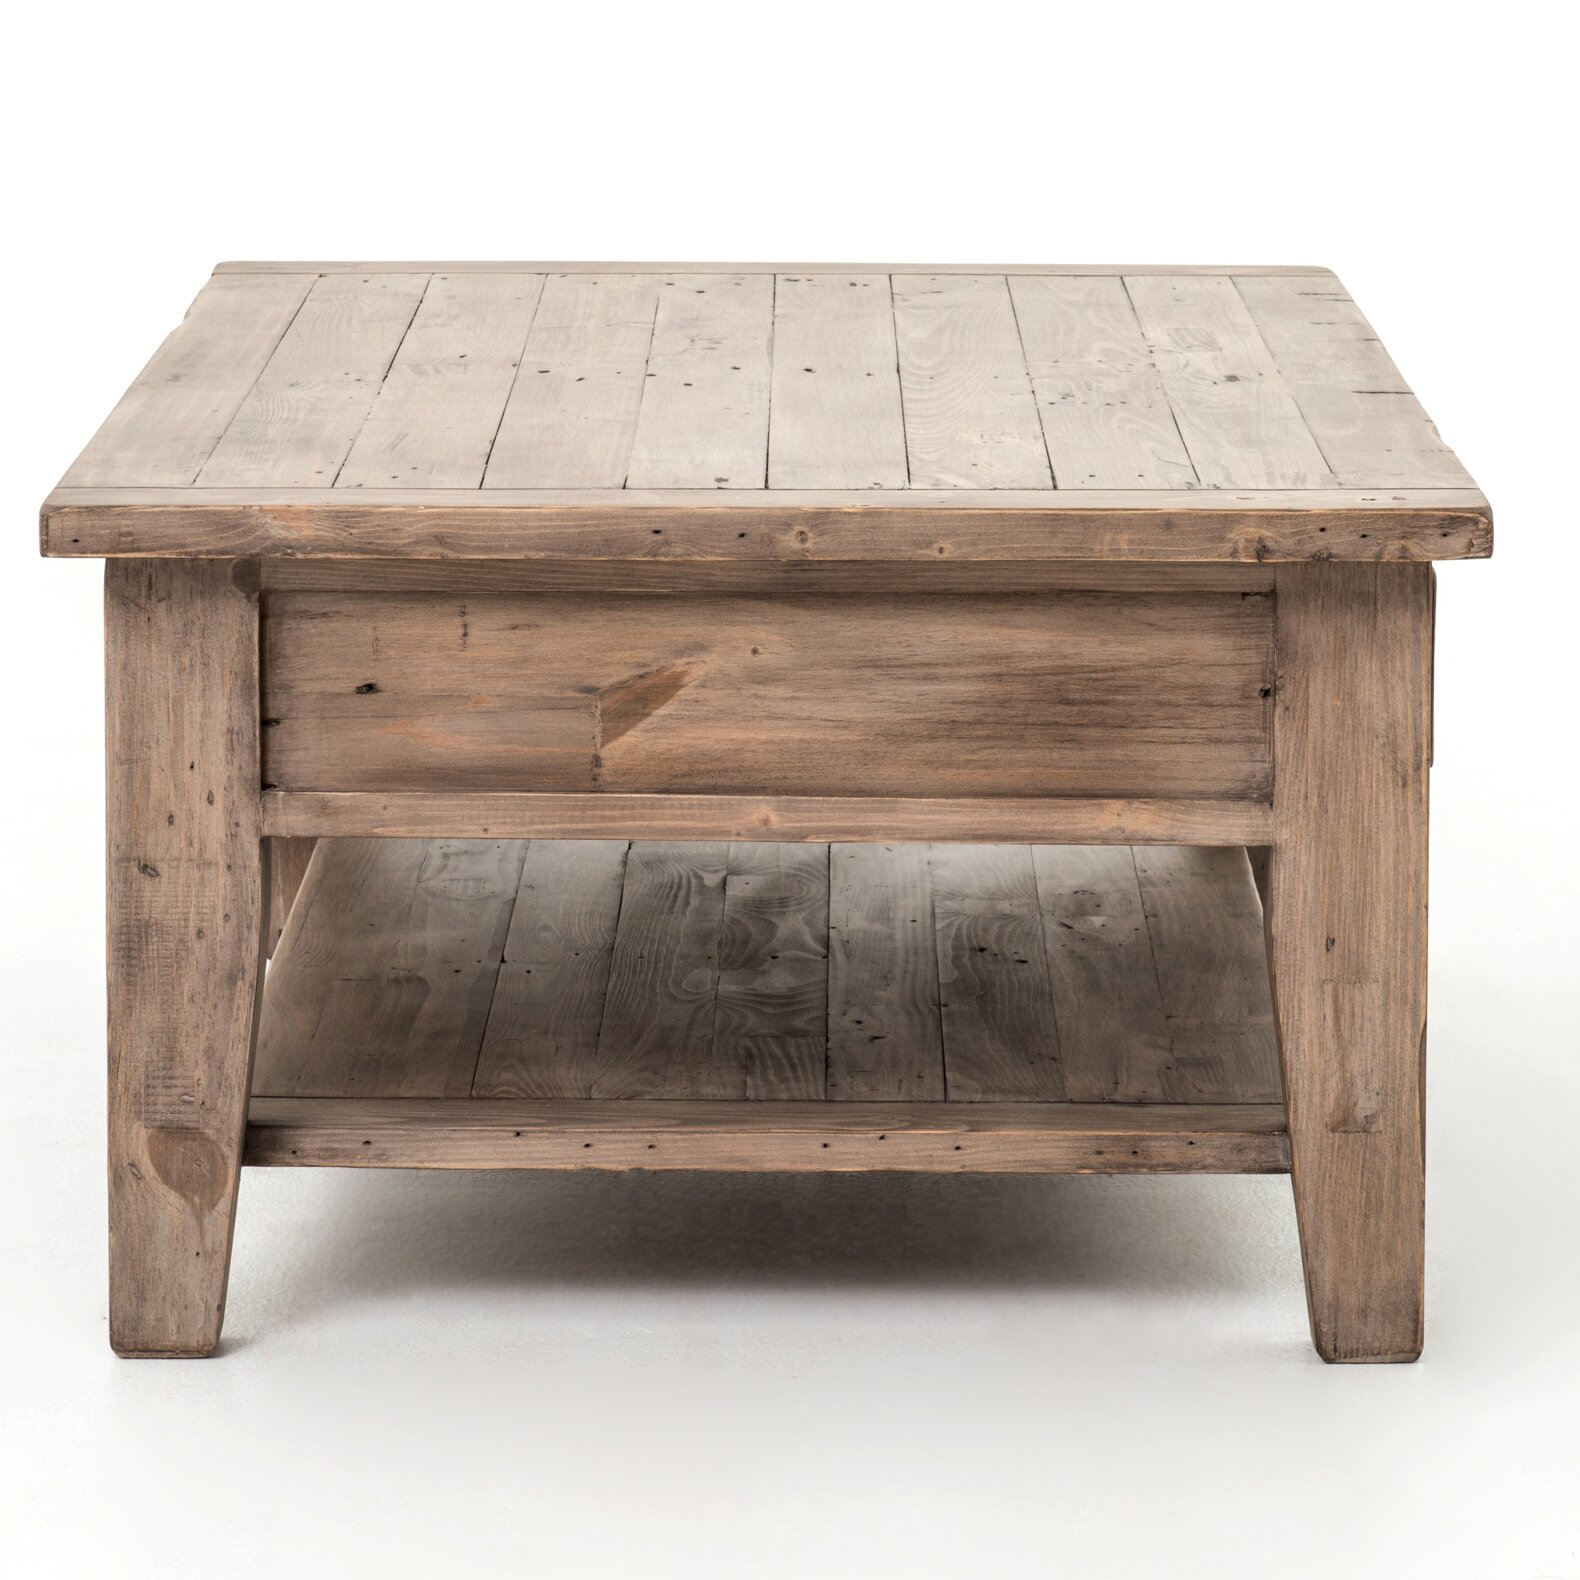 Laurel foundry modern farmhouse abbot coffee table for Modern farmhouse coffee table